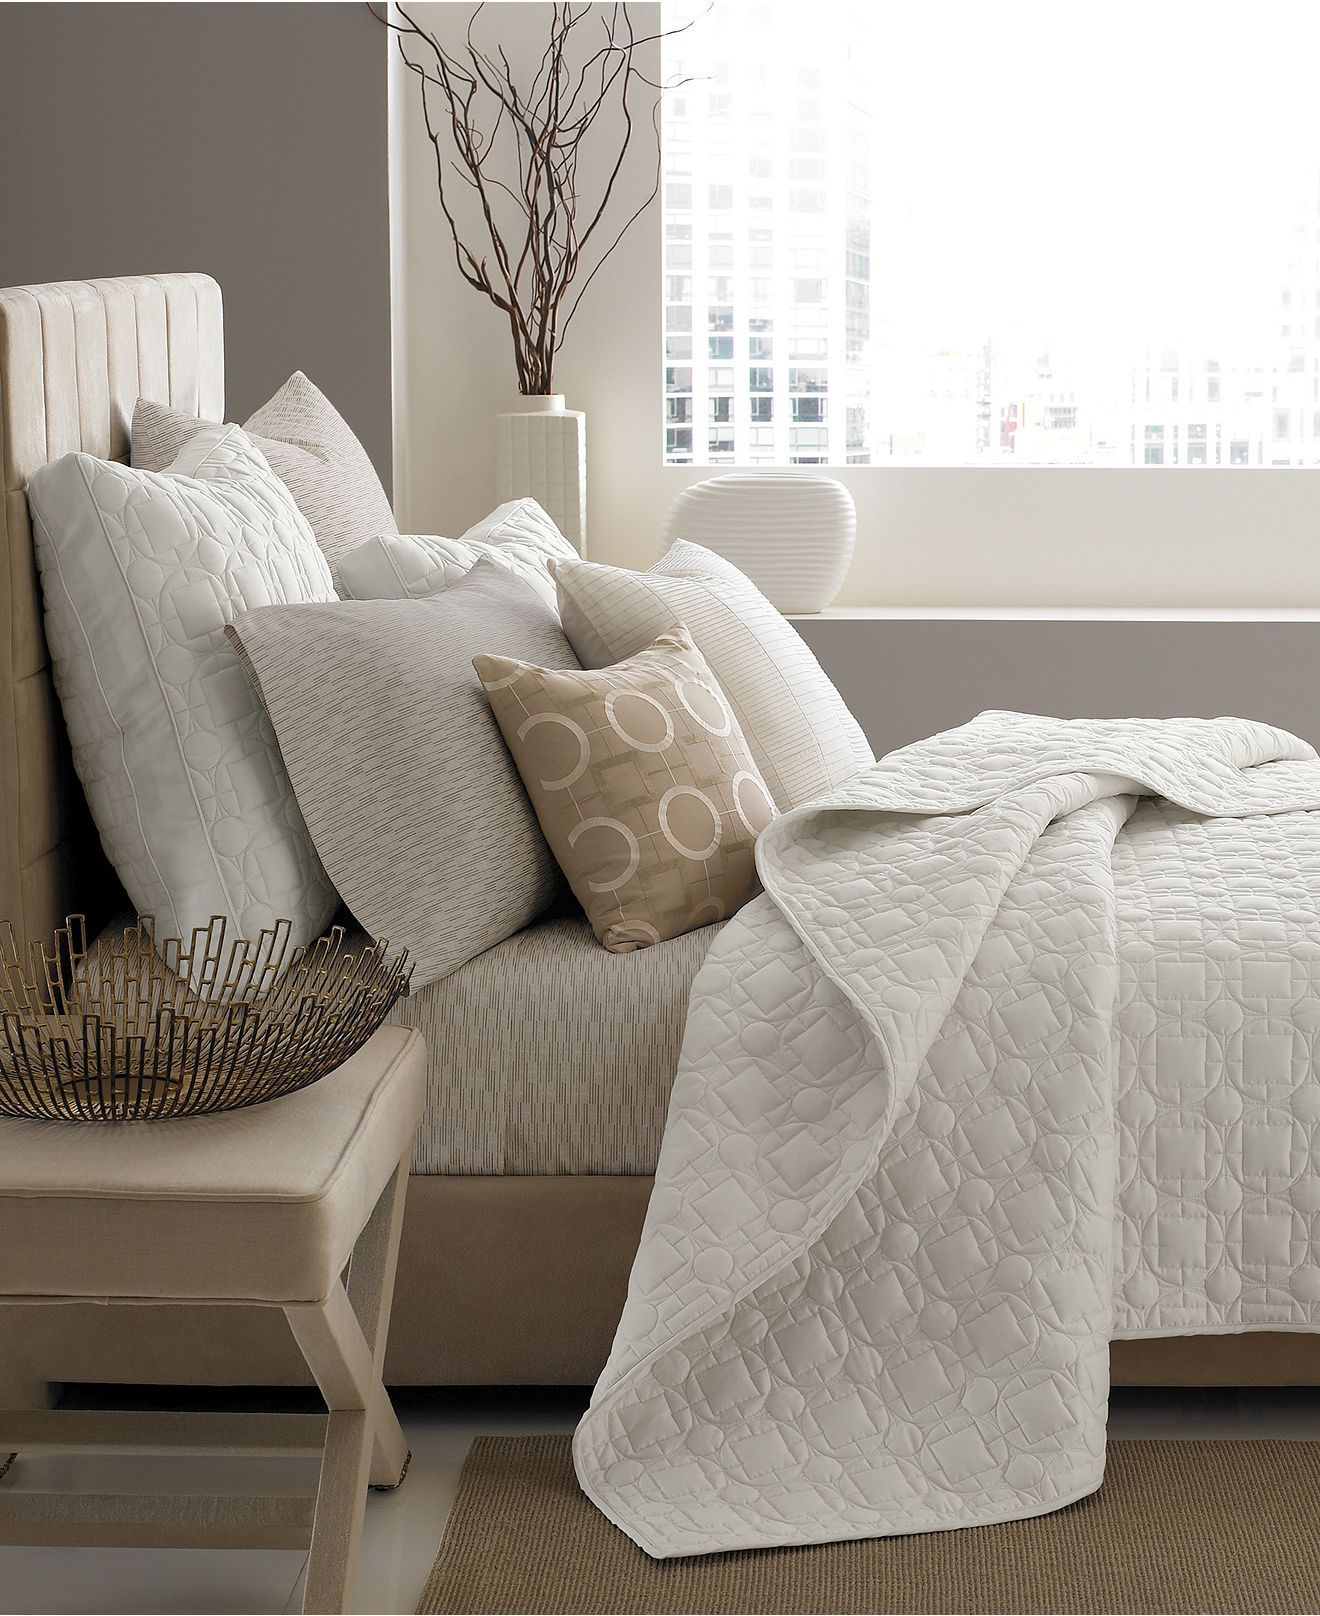 Hotel Collection Platinum: Lakehouse Bedding- Almost Exactly What I Am Looking For